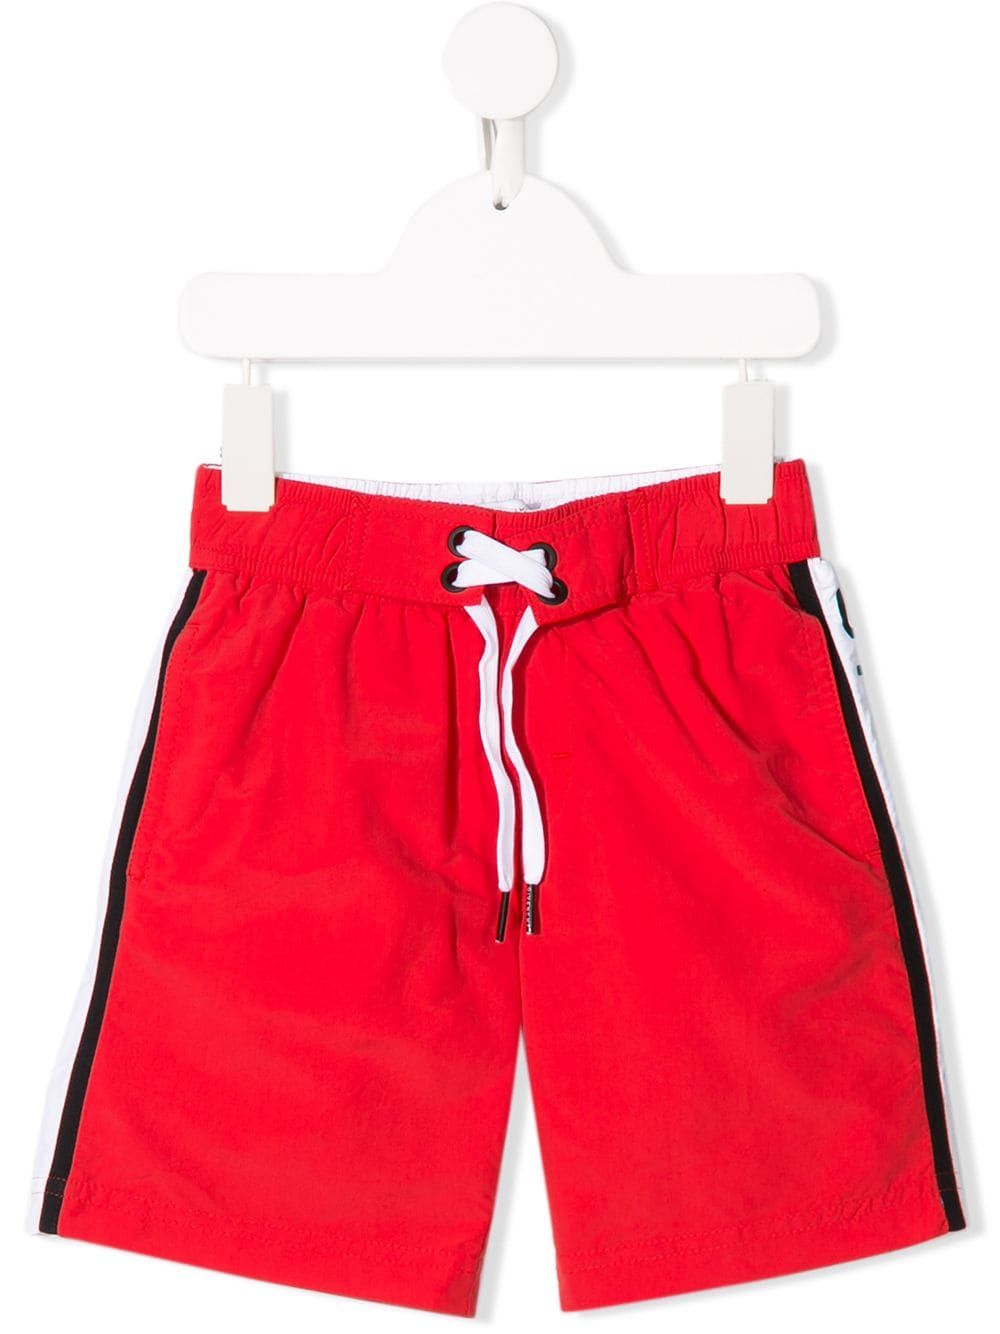 FASUWAVE Mens Swim Trunks Fish Color Quick Dry Beach Board Shorts with Mesh Lining